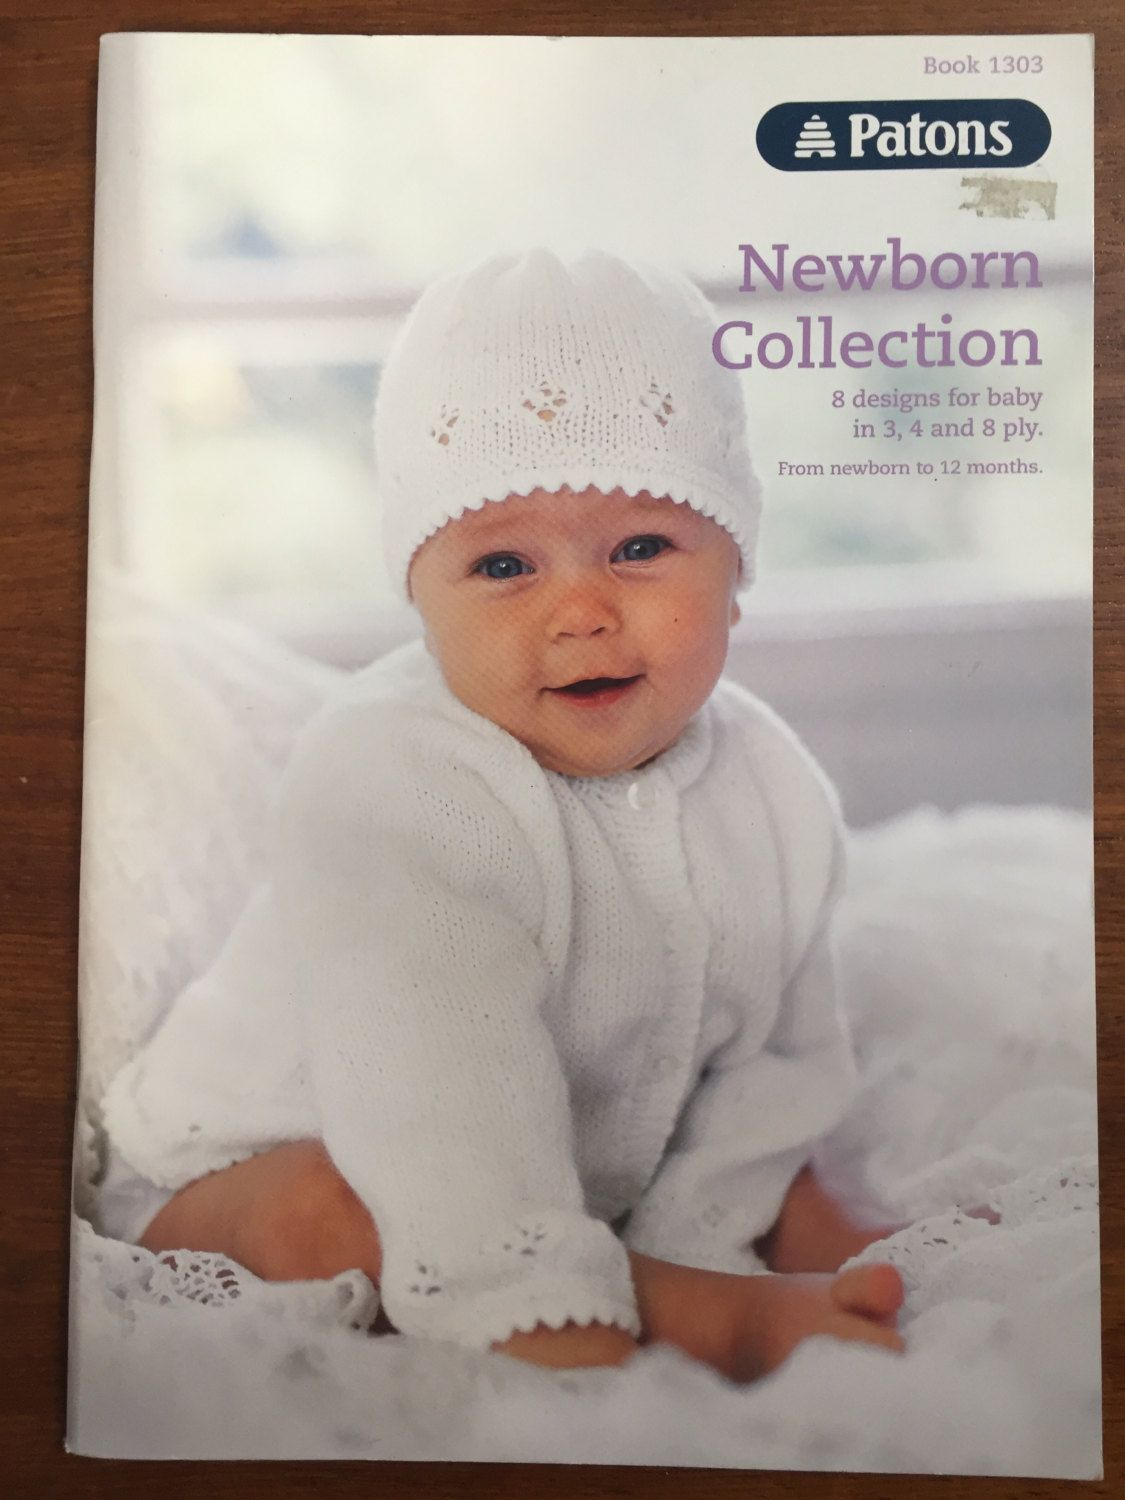 Patons Pattern Book 1303 Newborn Collection 8 Designs 3,4 & 8 Ply ...